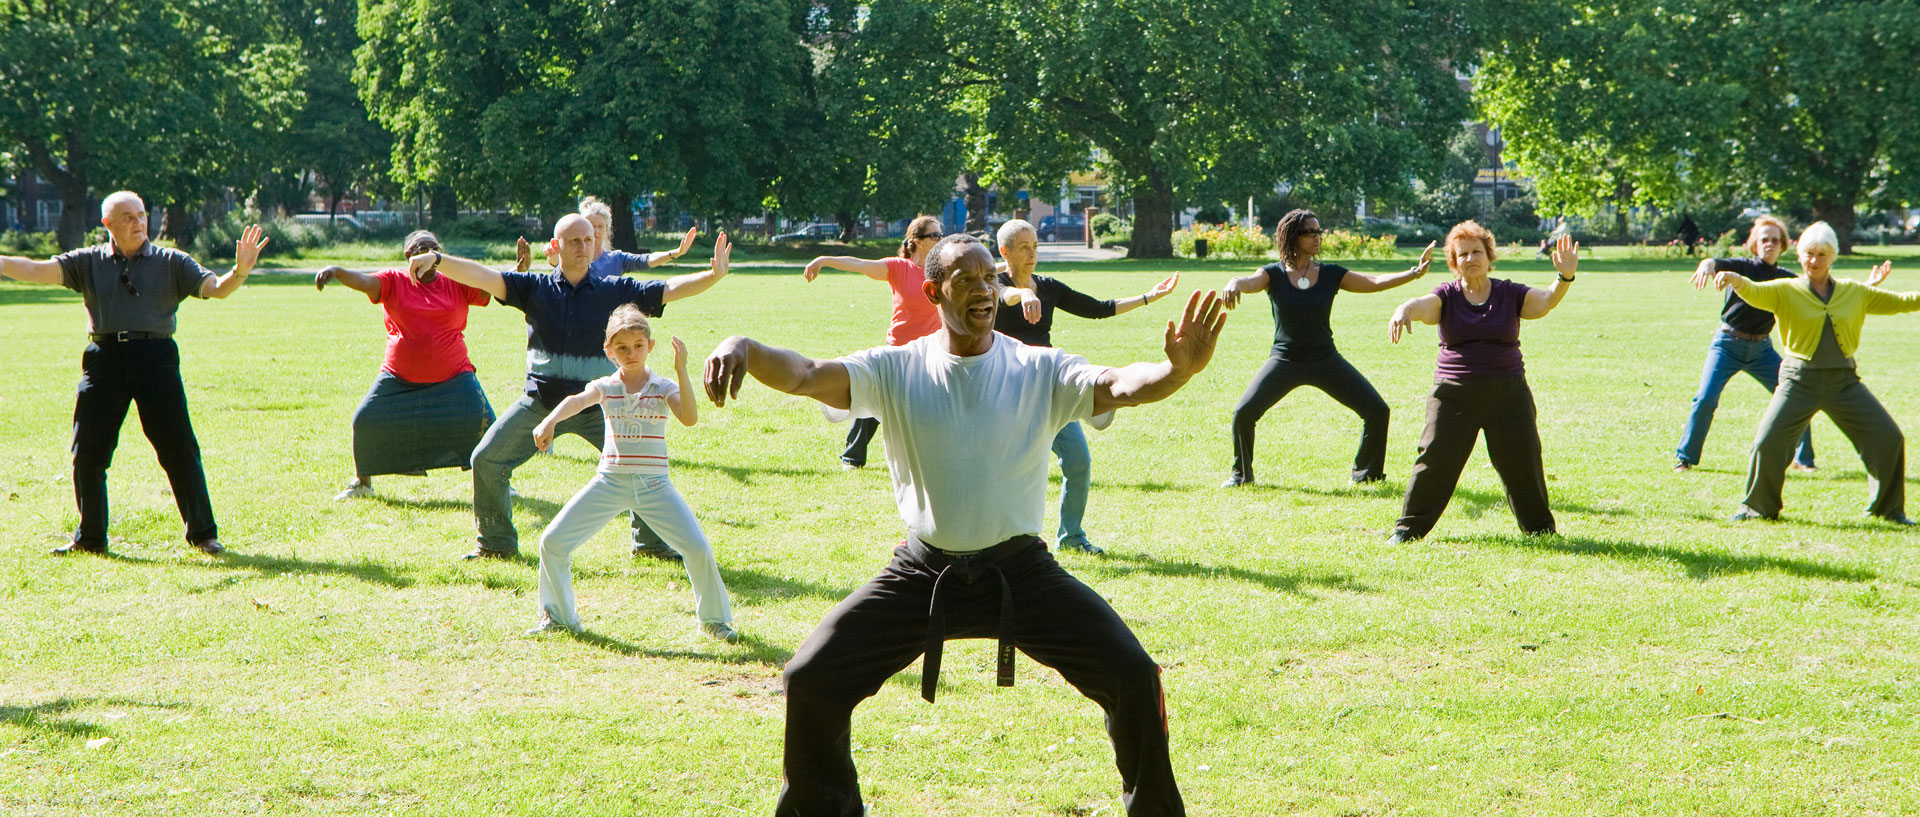 Tai Chi Benefits Your Heart